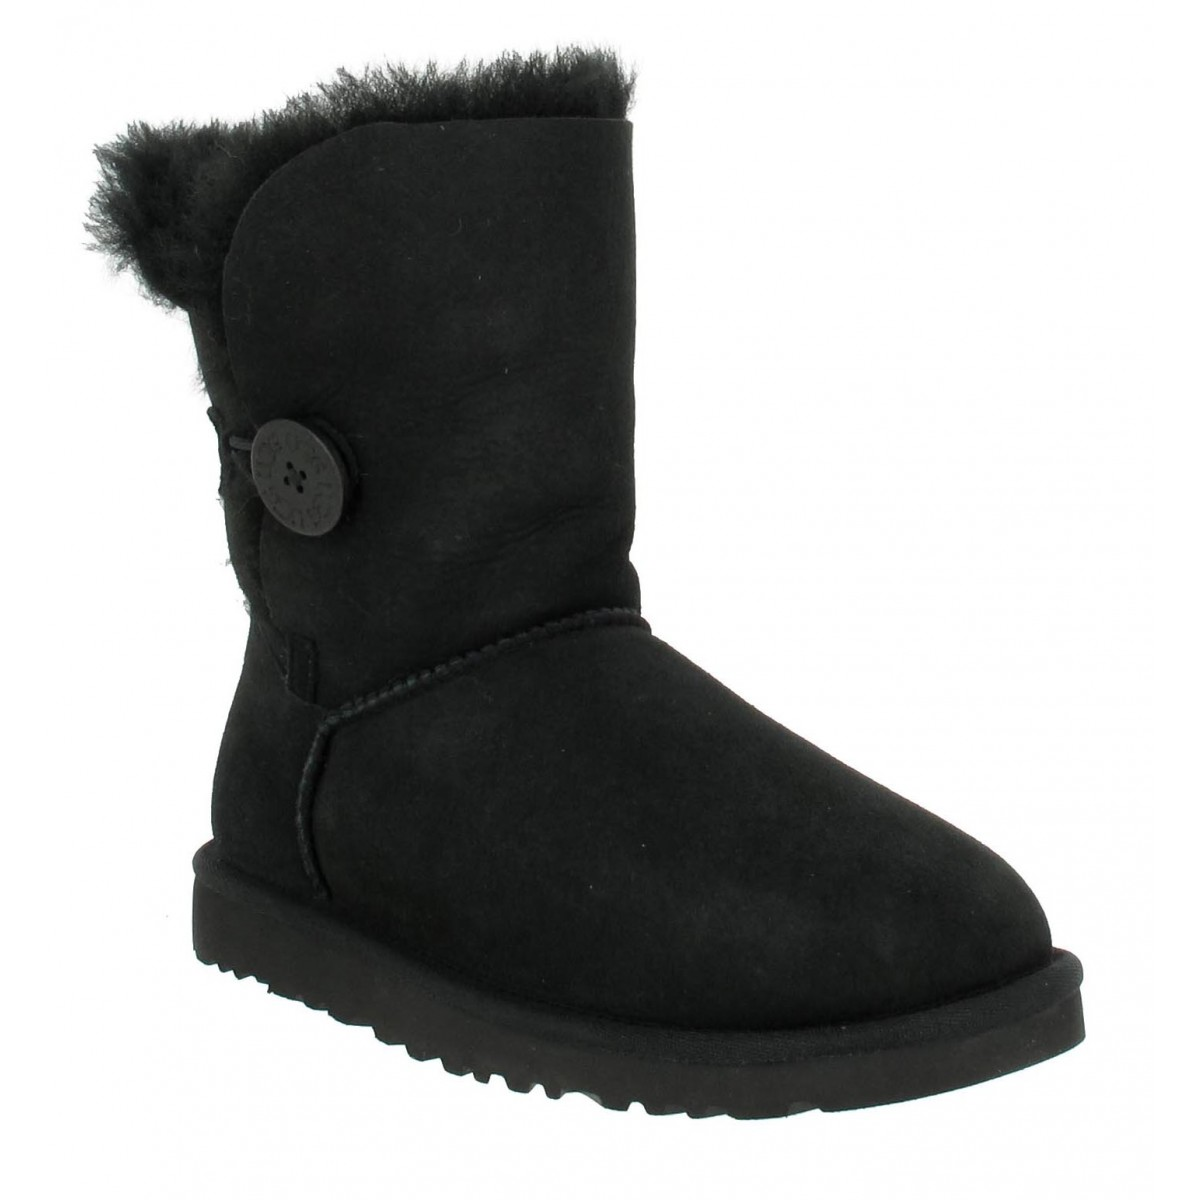 Bottines UGG AUSTRALIA Bailey Button velours Femme Noir